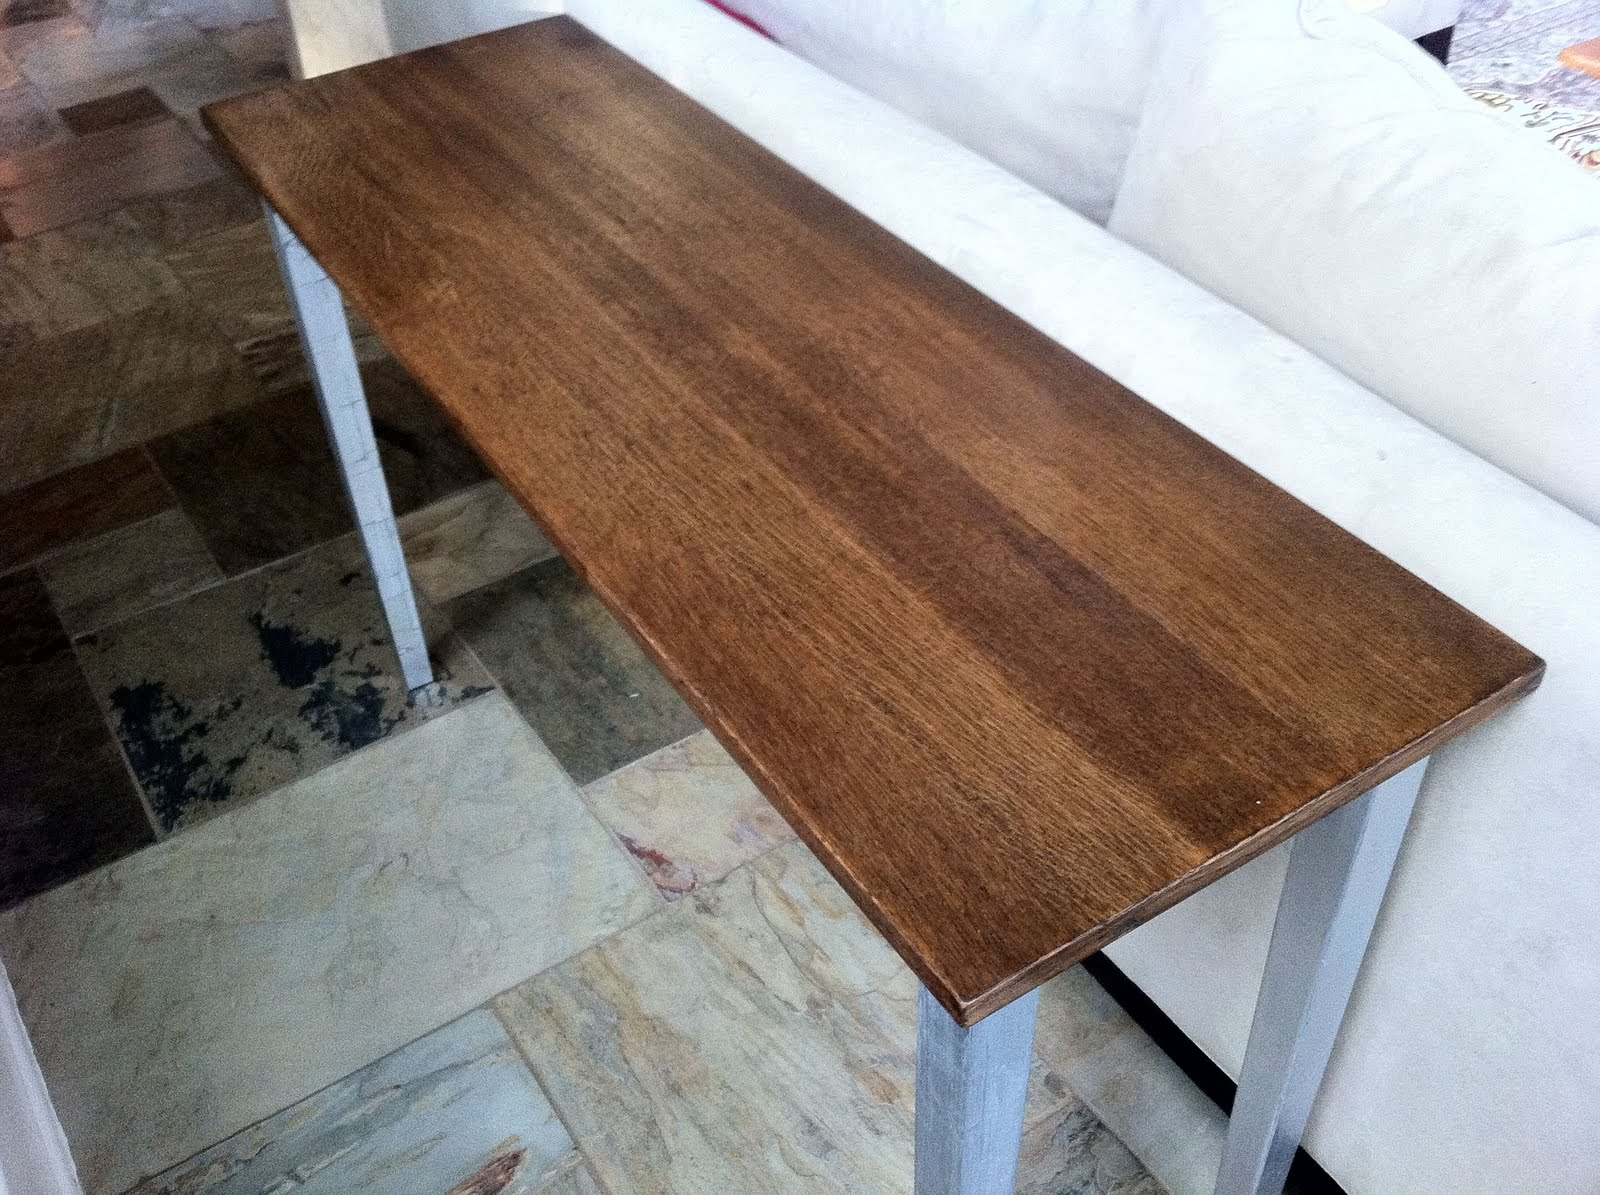 Minwax Dark Walnut On Pine With minwax walnut stain.